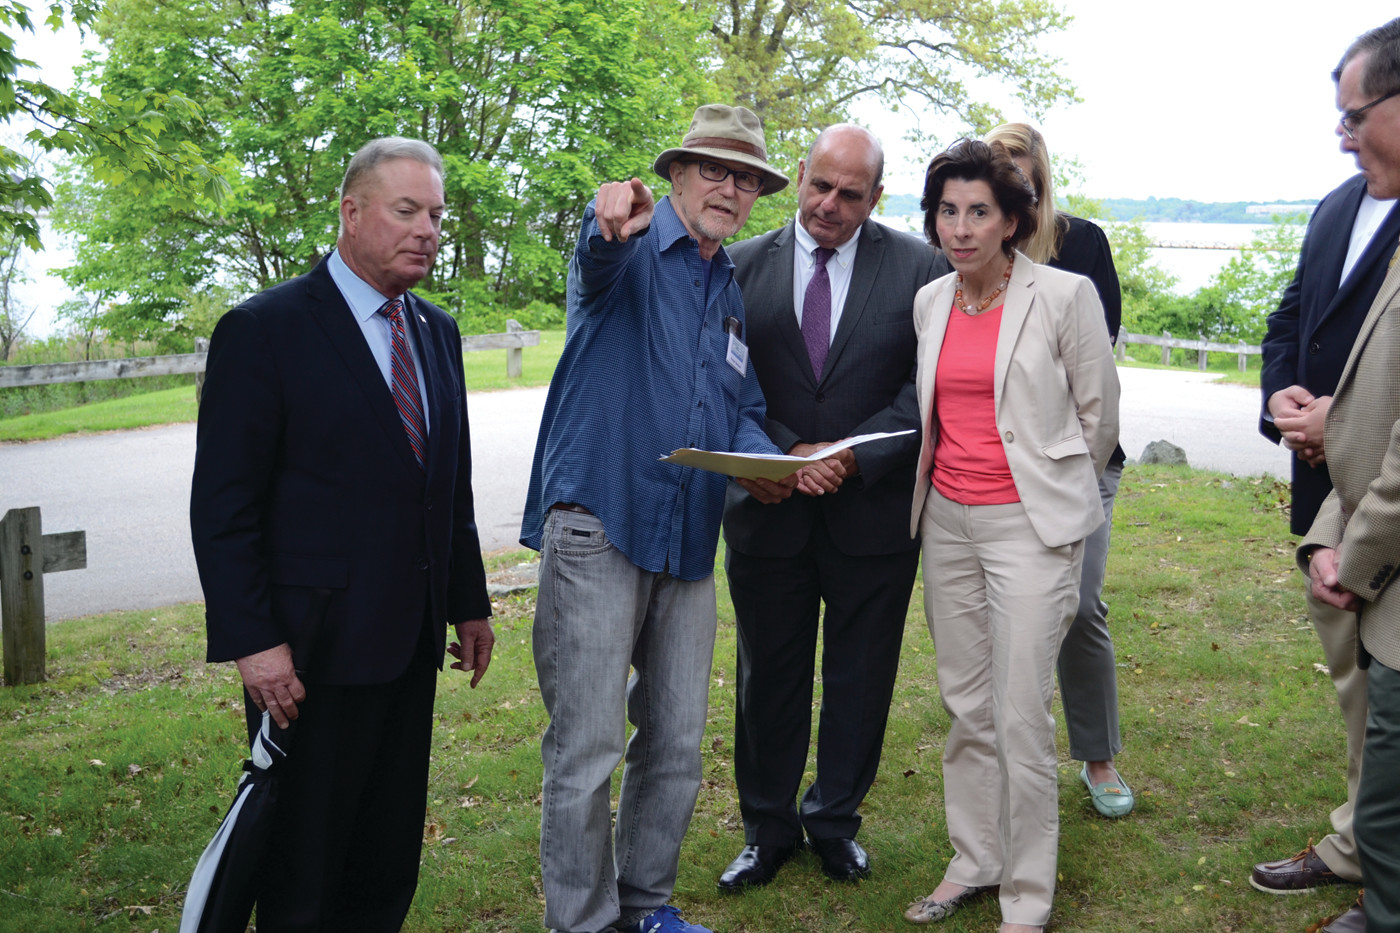 SURVEYING SALTER: Friends of Salter Grove coordinator Peter Becker (with hat) points in the direction of the playground at Salter Grove during a visit by Governor Gina Raimondo. Rep. Joseph McNamara is to his left, and acting mayor Joseph Solomon to his right.